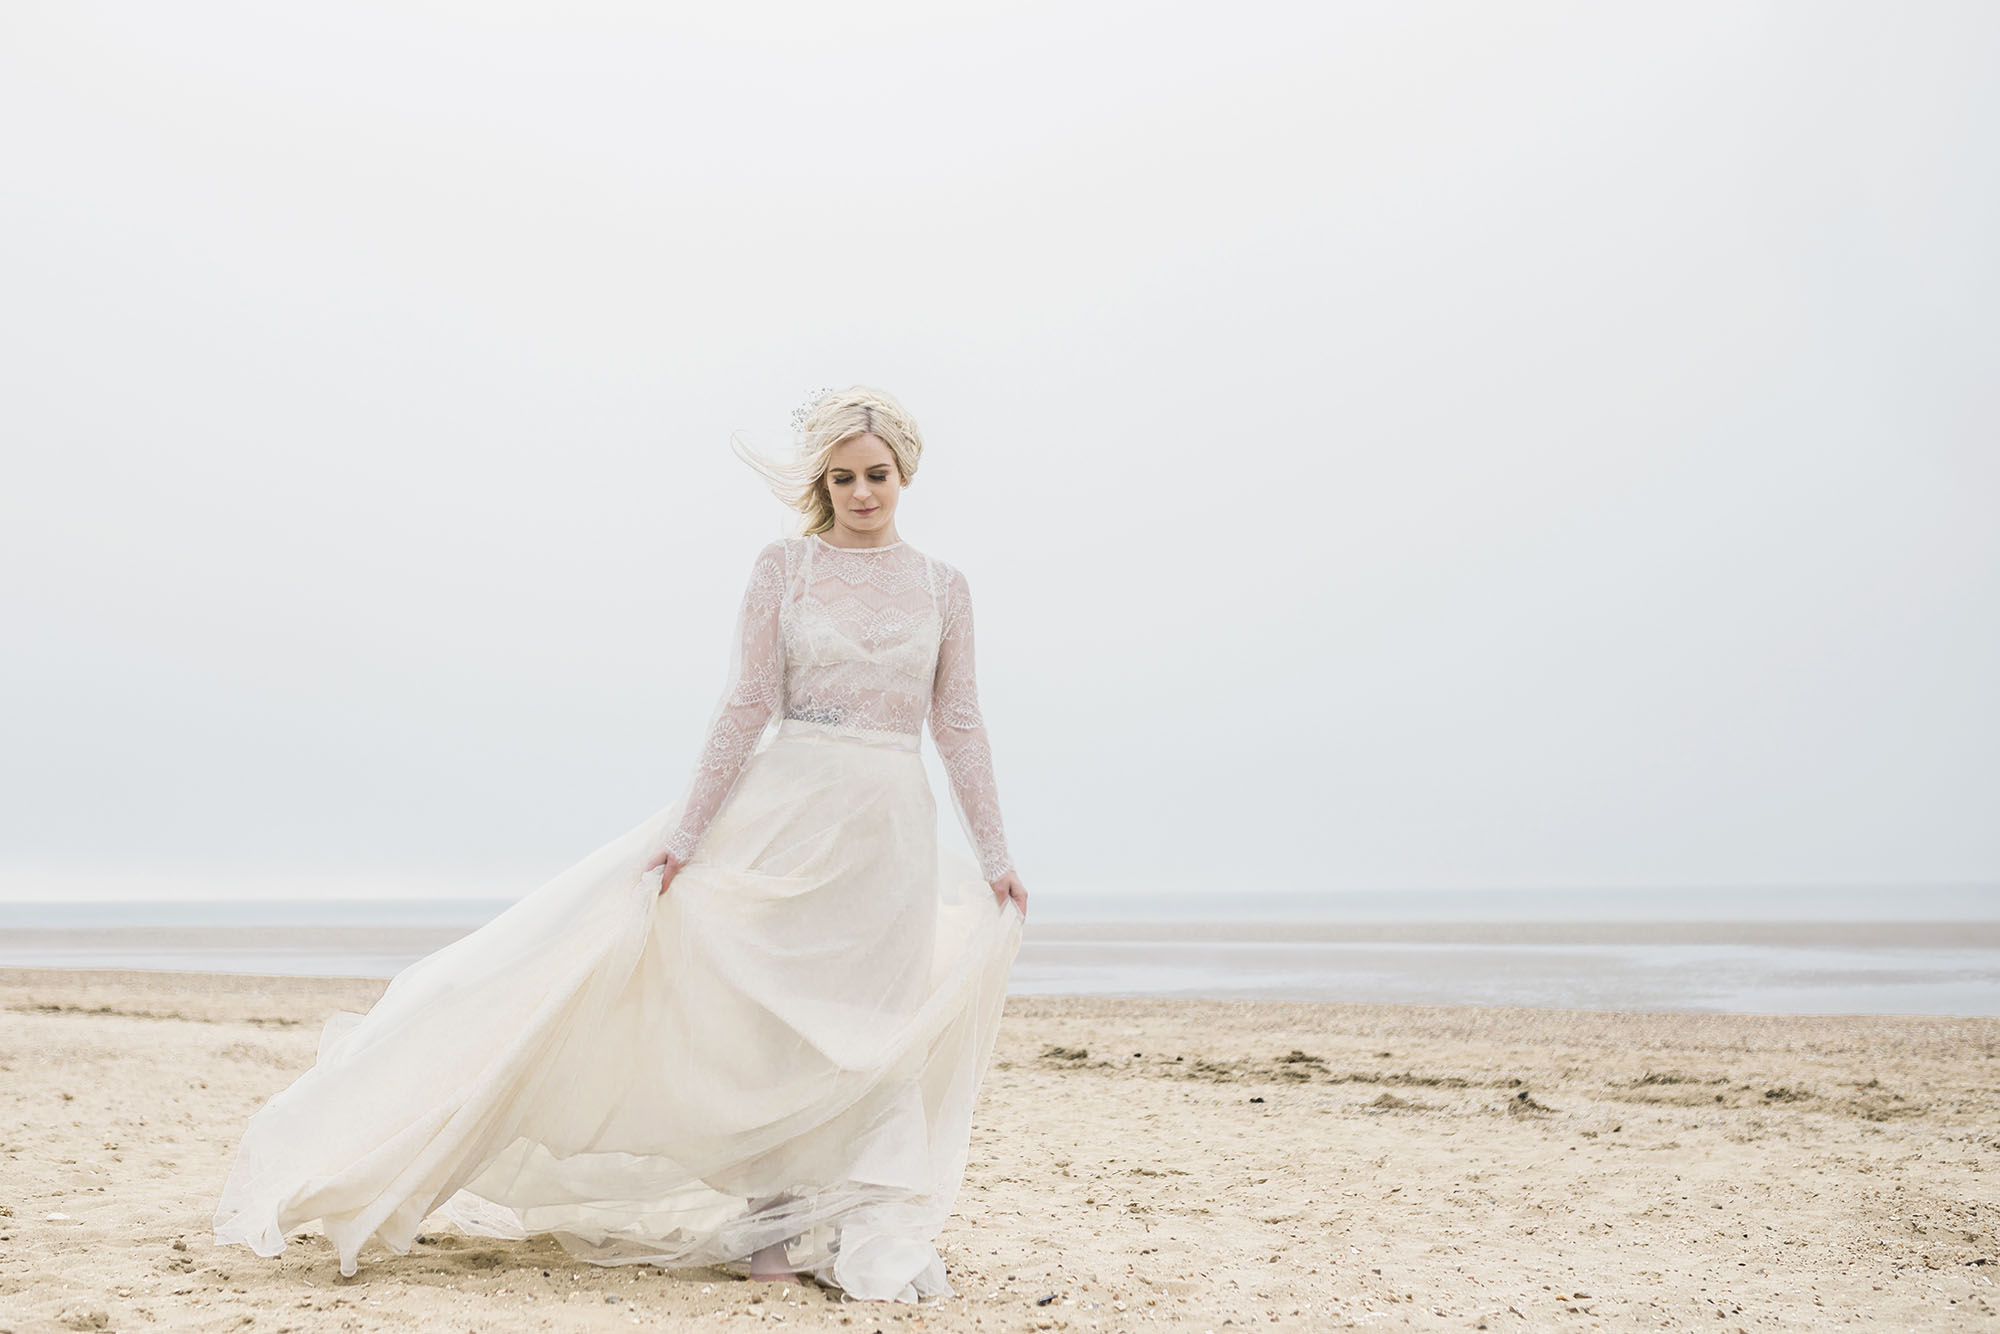 Ethereal bride walking on a beach